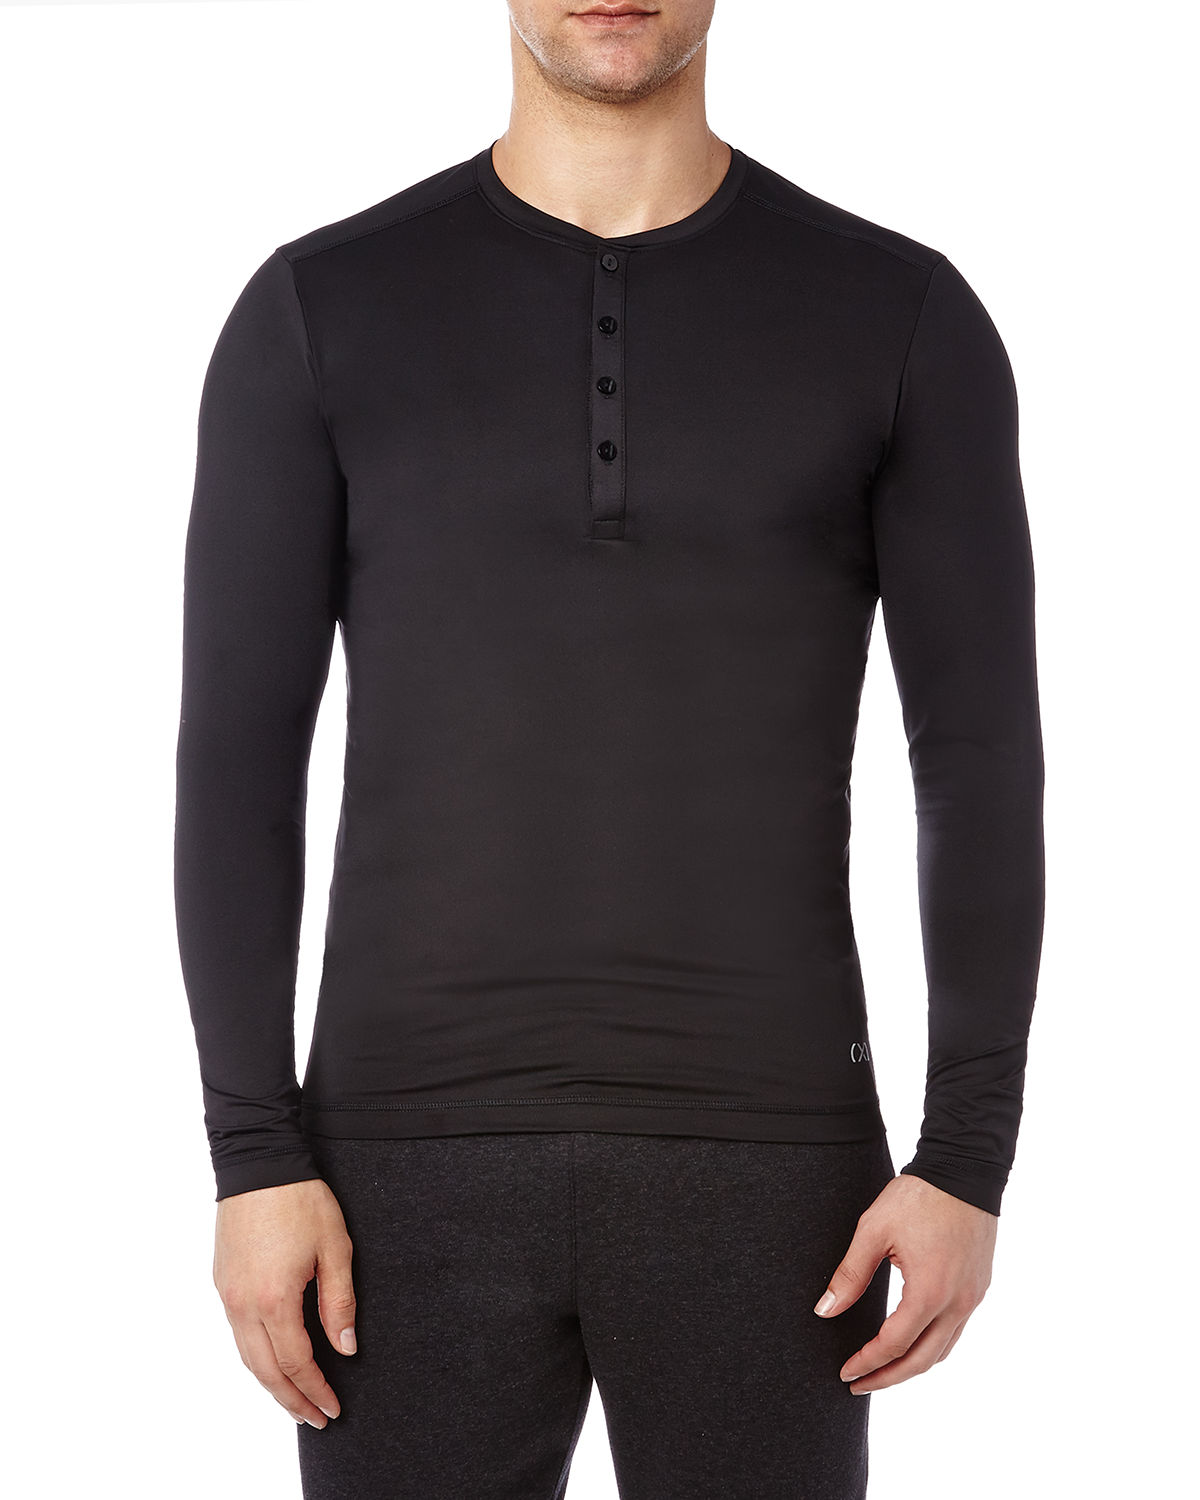 2(X)ist T-shirts MEN'S SPEED DRI LONG-SLEEVE HENLEY SHIRT